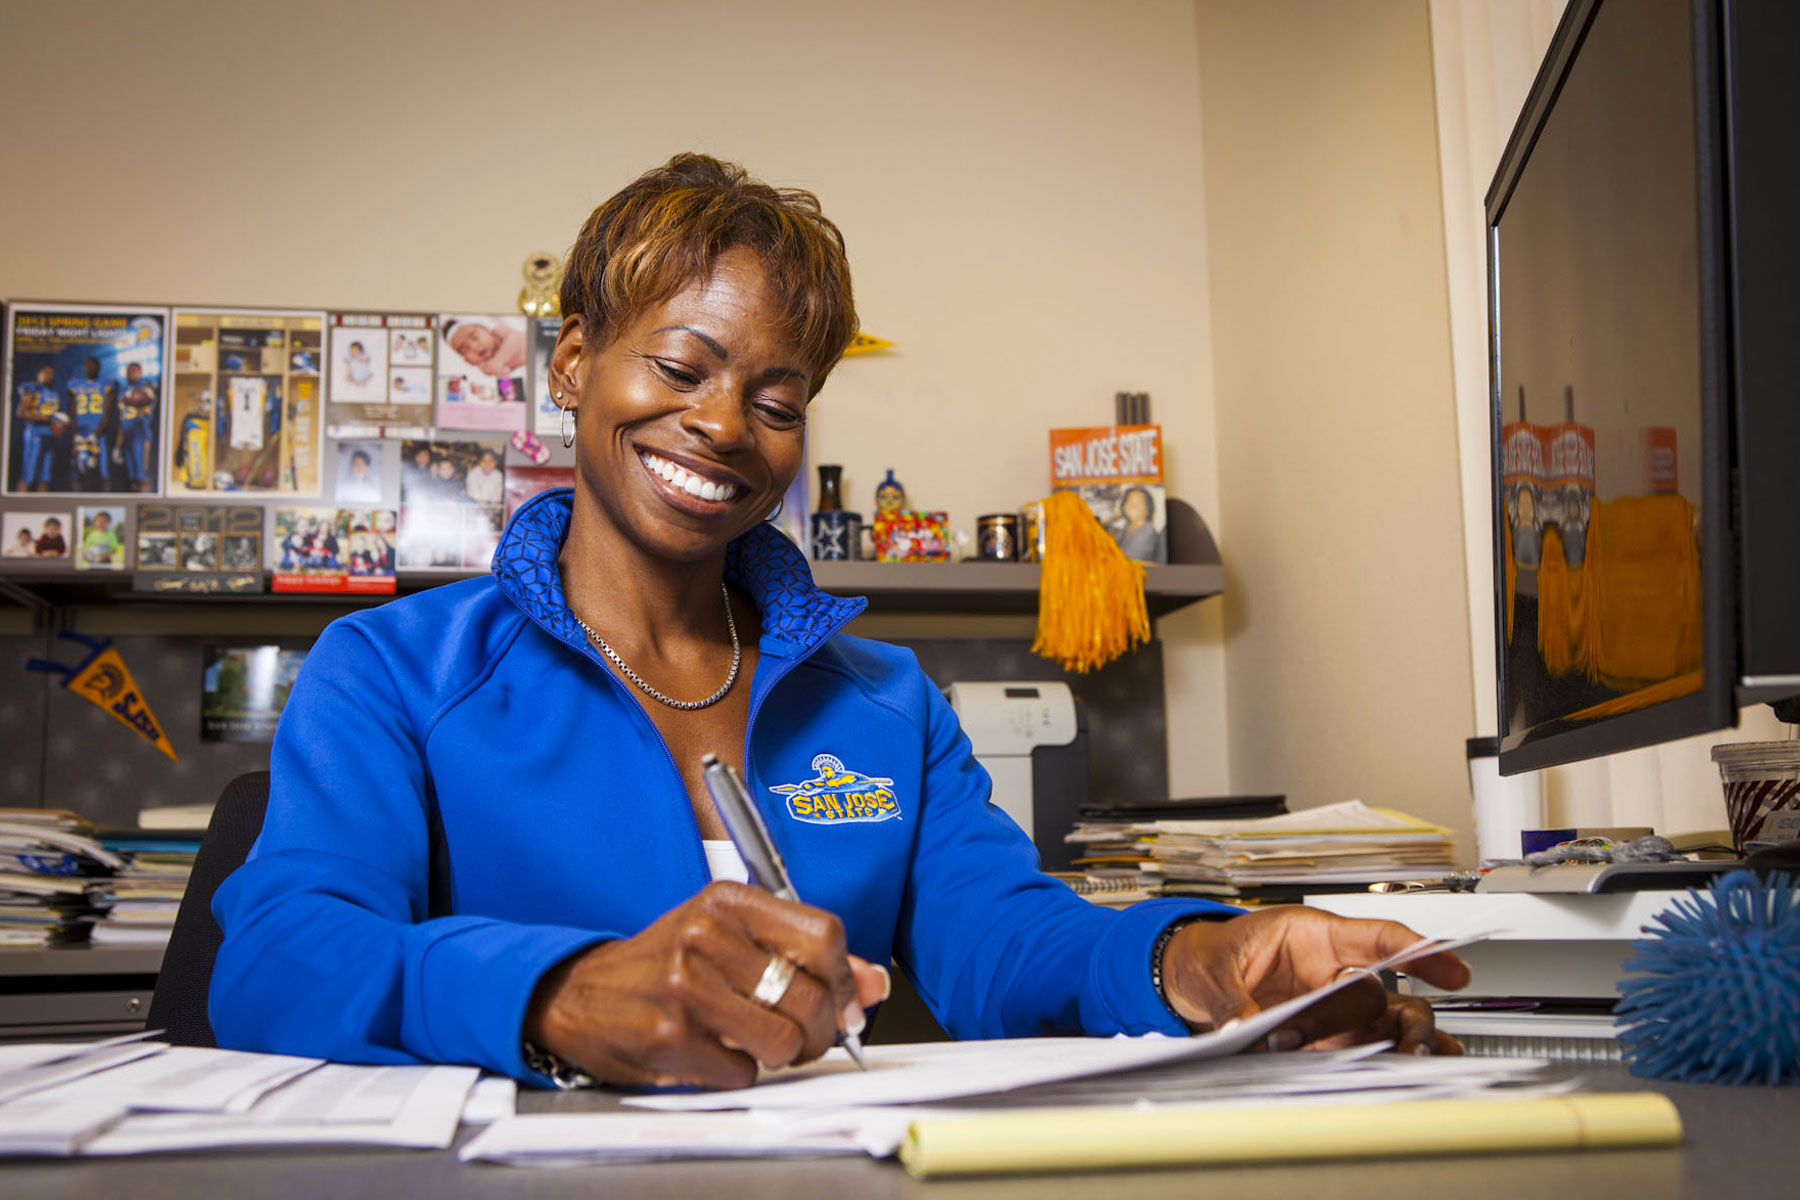 Coleetta McElroy smiling while doing paperwork.